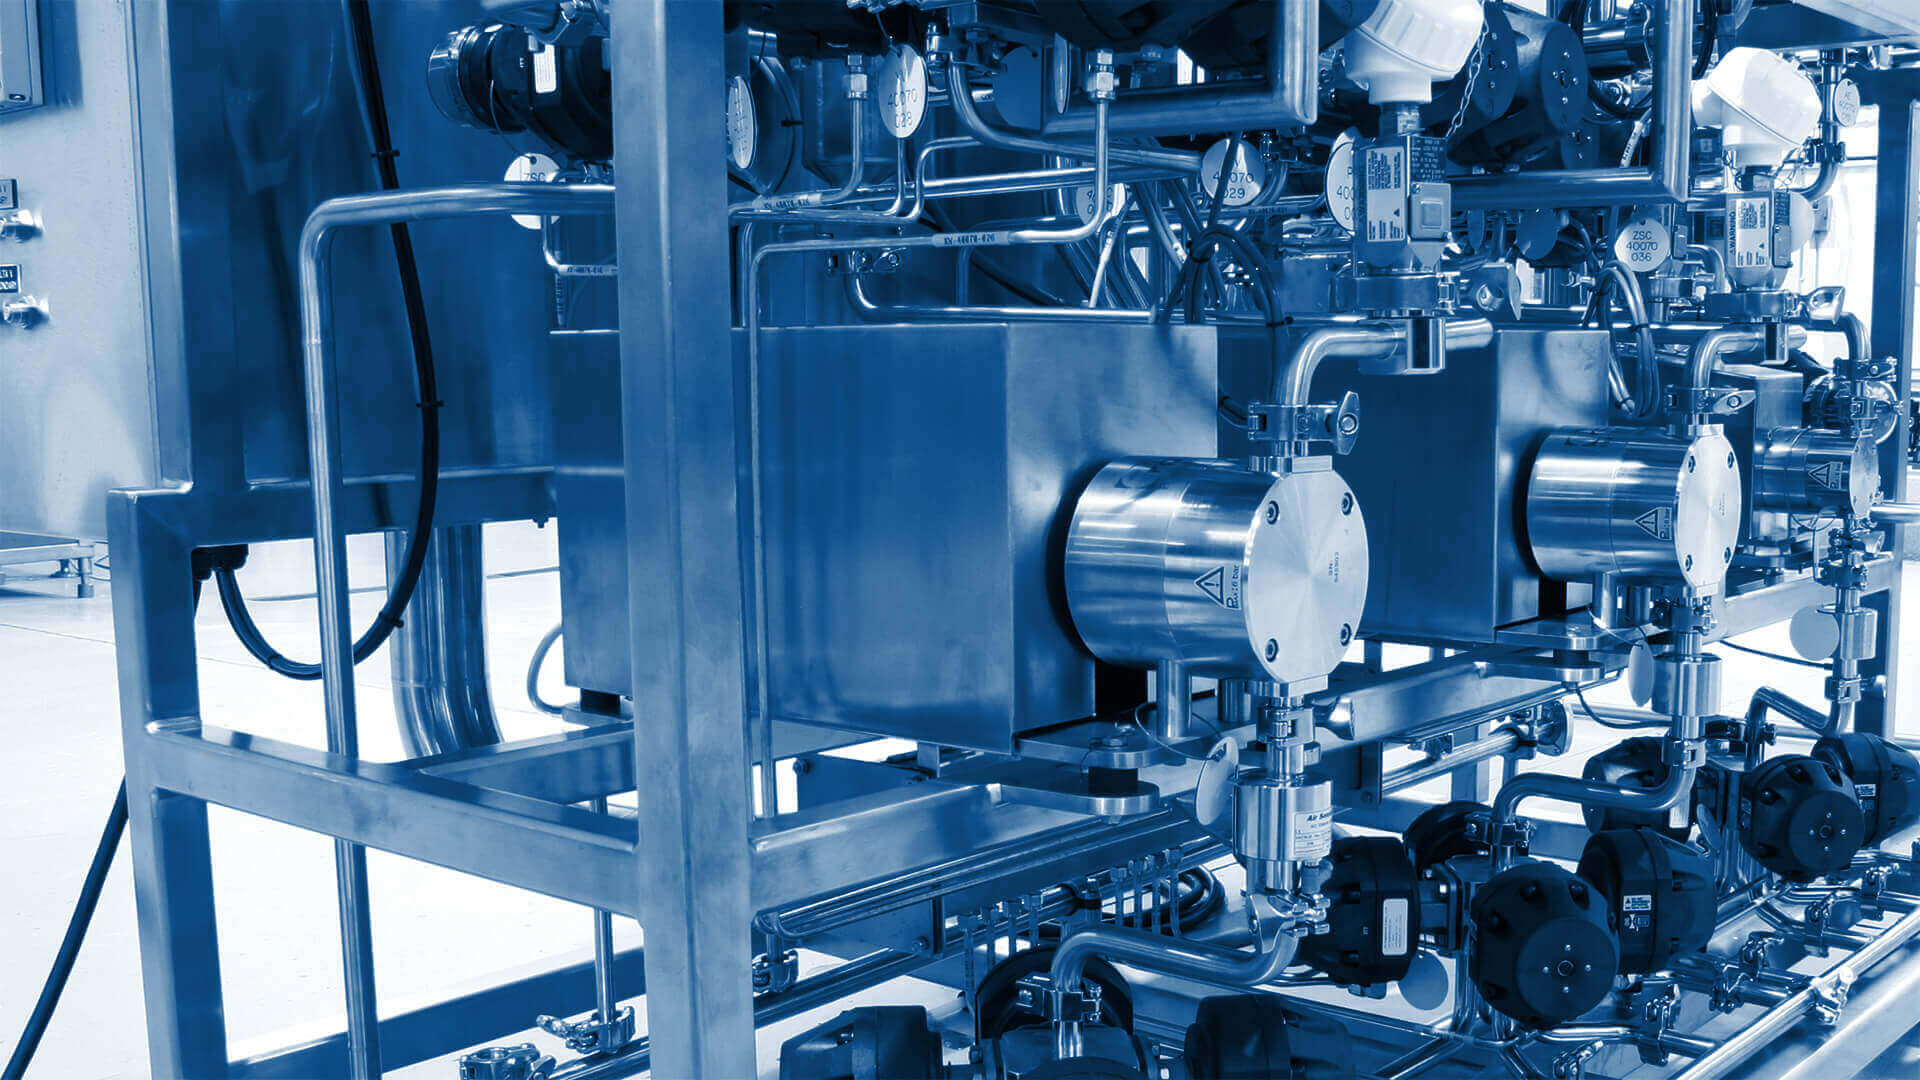 Quattroflow pumps in a BioPharma application